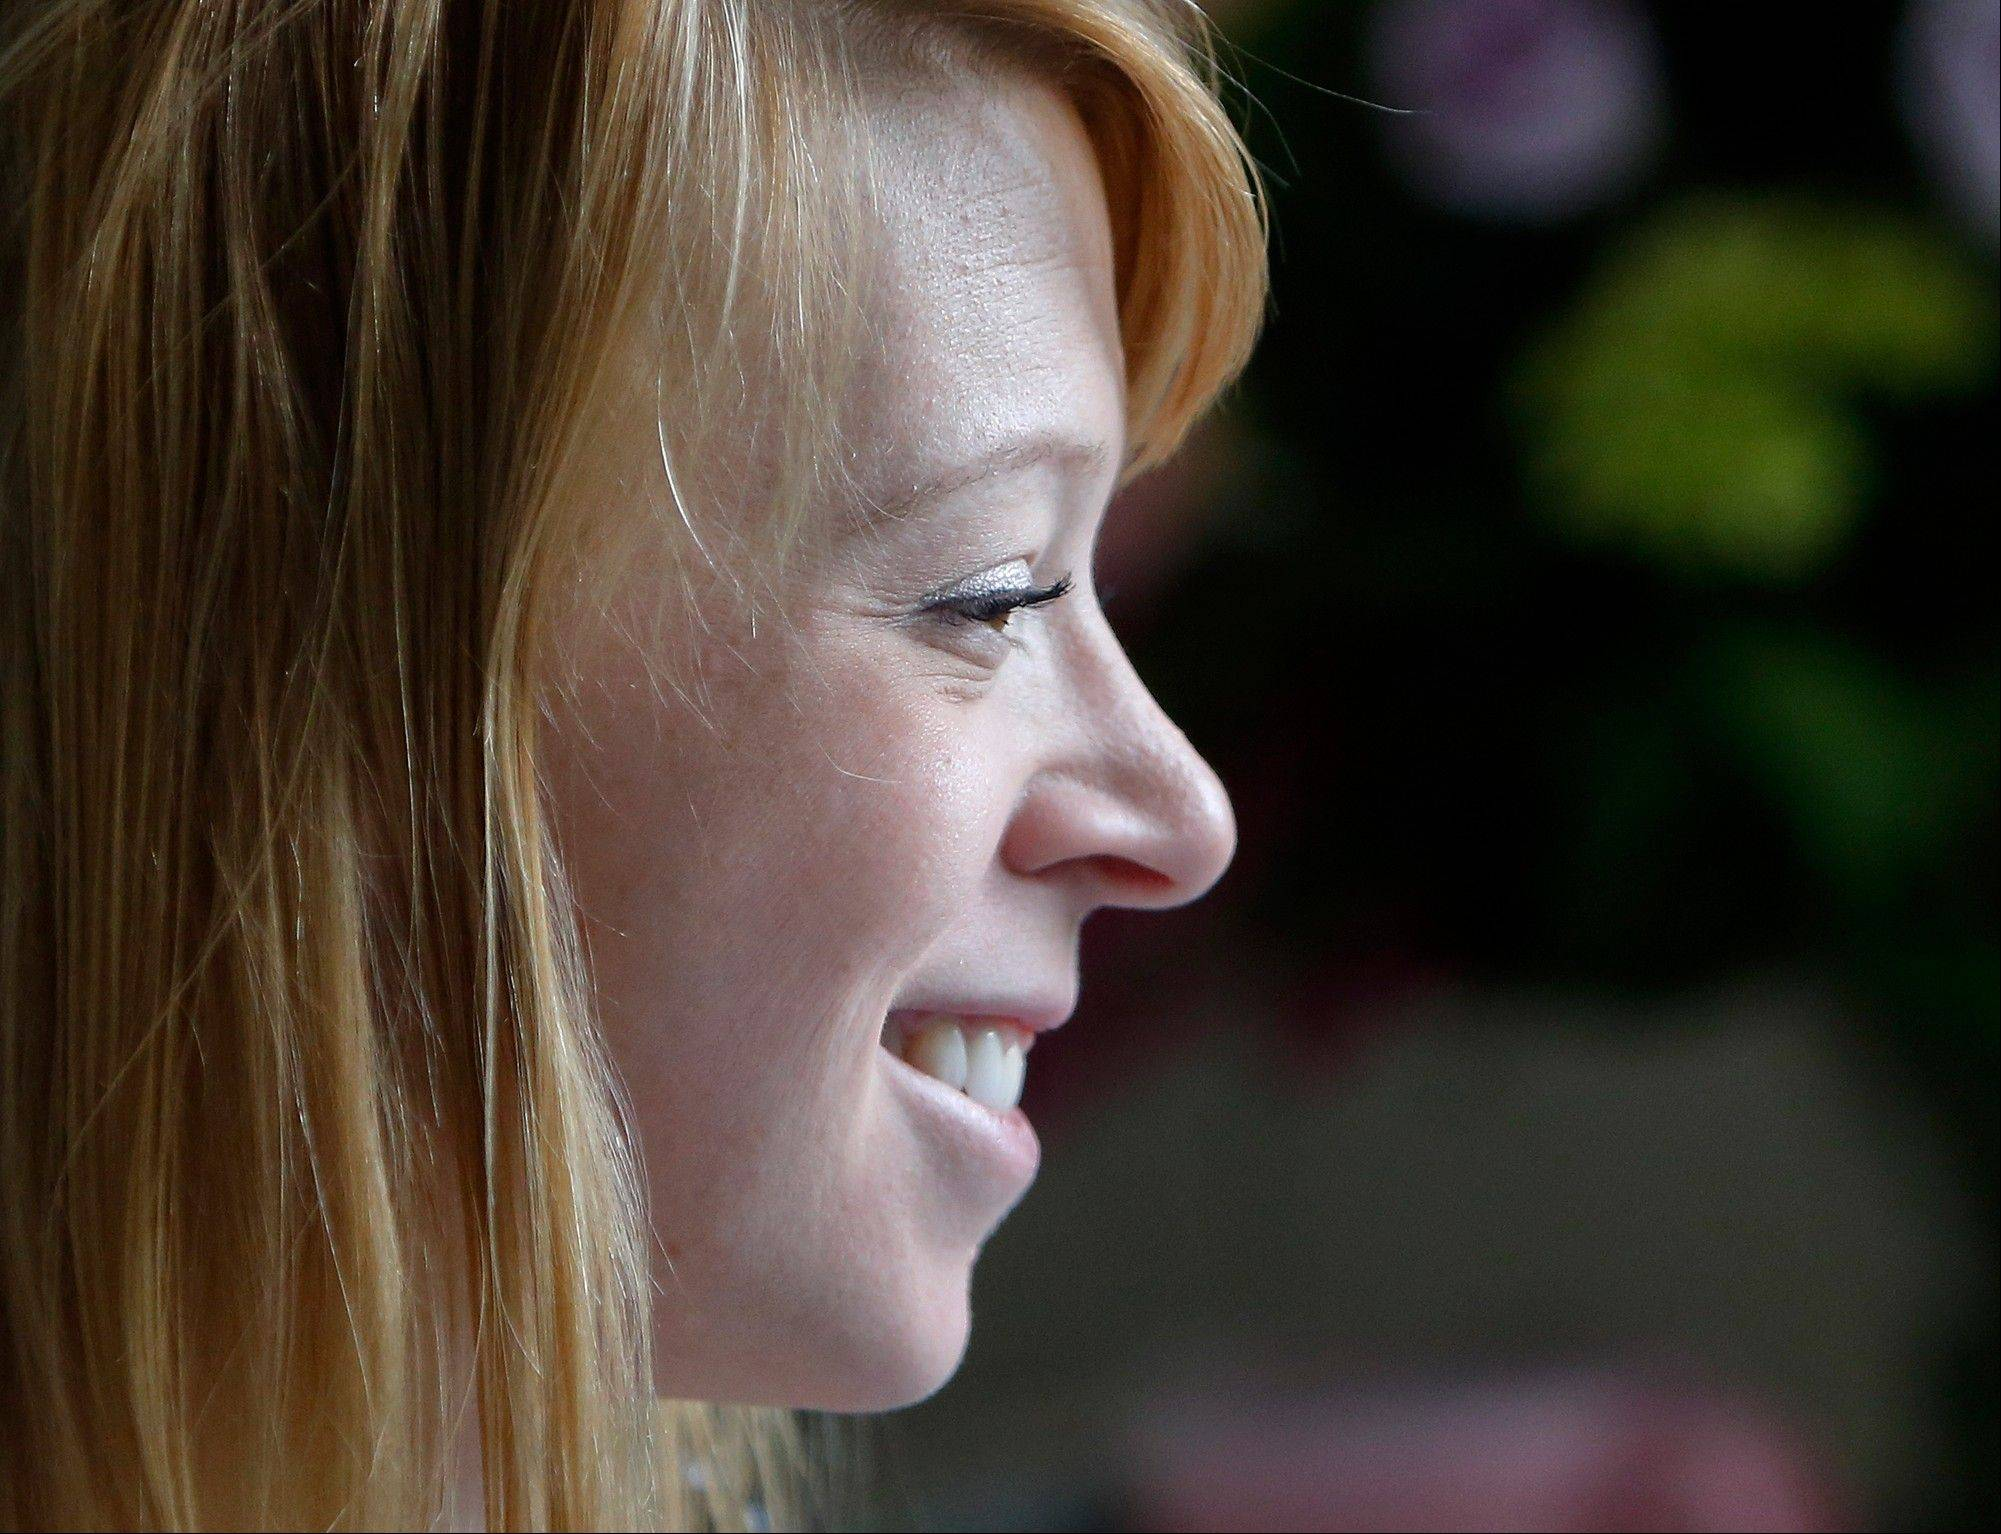 Adrianne Haslet, a professional ballroom dancer injured by one of the bombs that exploded near the Boston Marathon finish line, smiles in her room at Spaulding Rehabilitation Hospital in Boston, Wednesday, April 24, 2013. Haslet, who lost her left foot and part of her lower leg, vows that she will dance again.